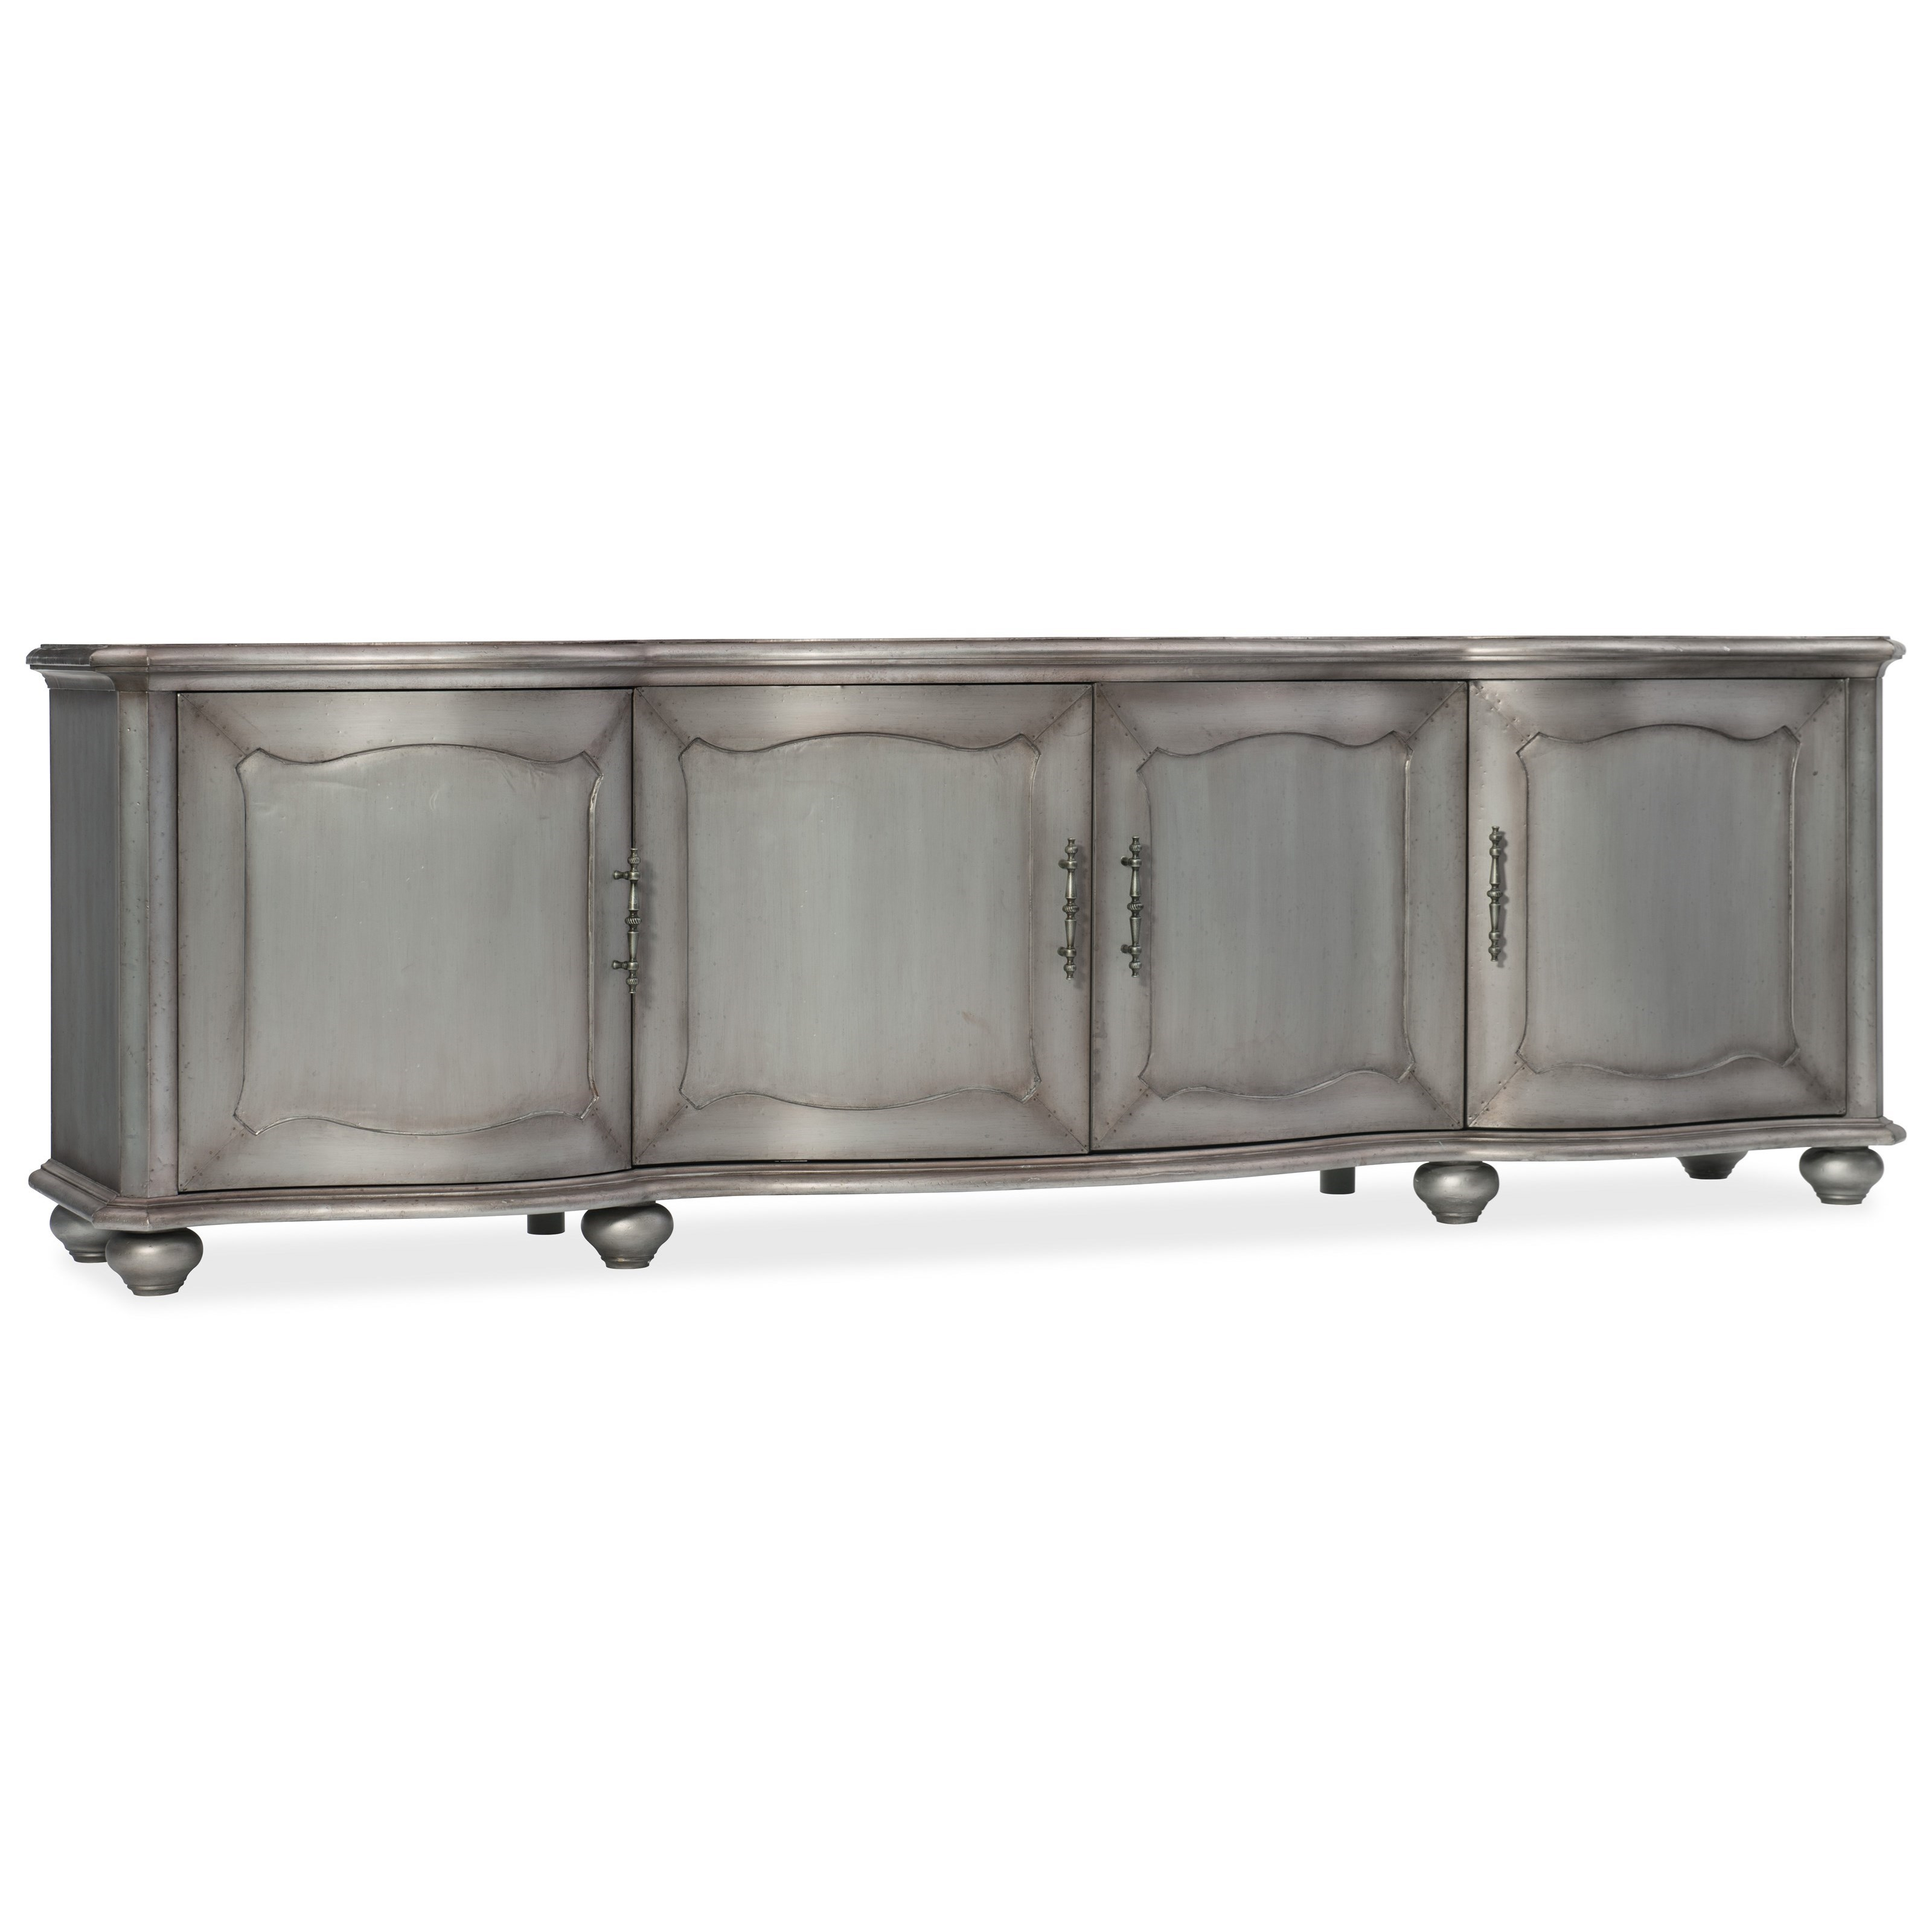 Hooker Furniture Arabella Entertainment Console - Item Number: 1610-55490-MTL